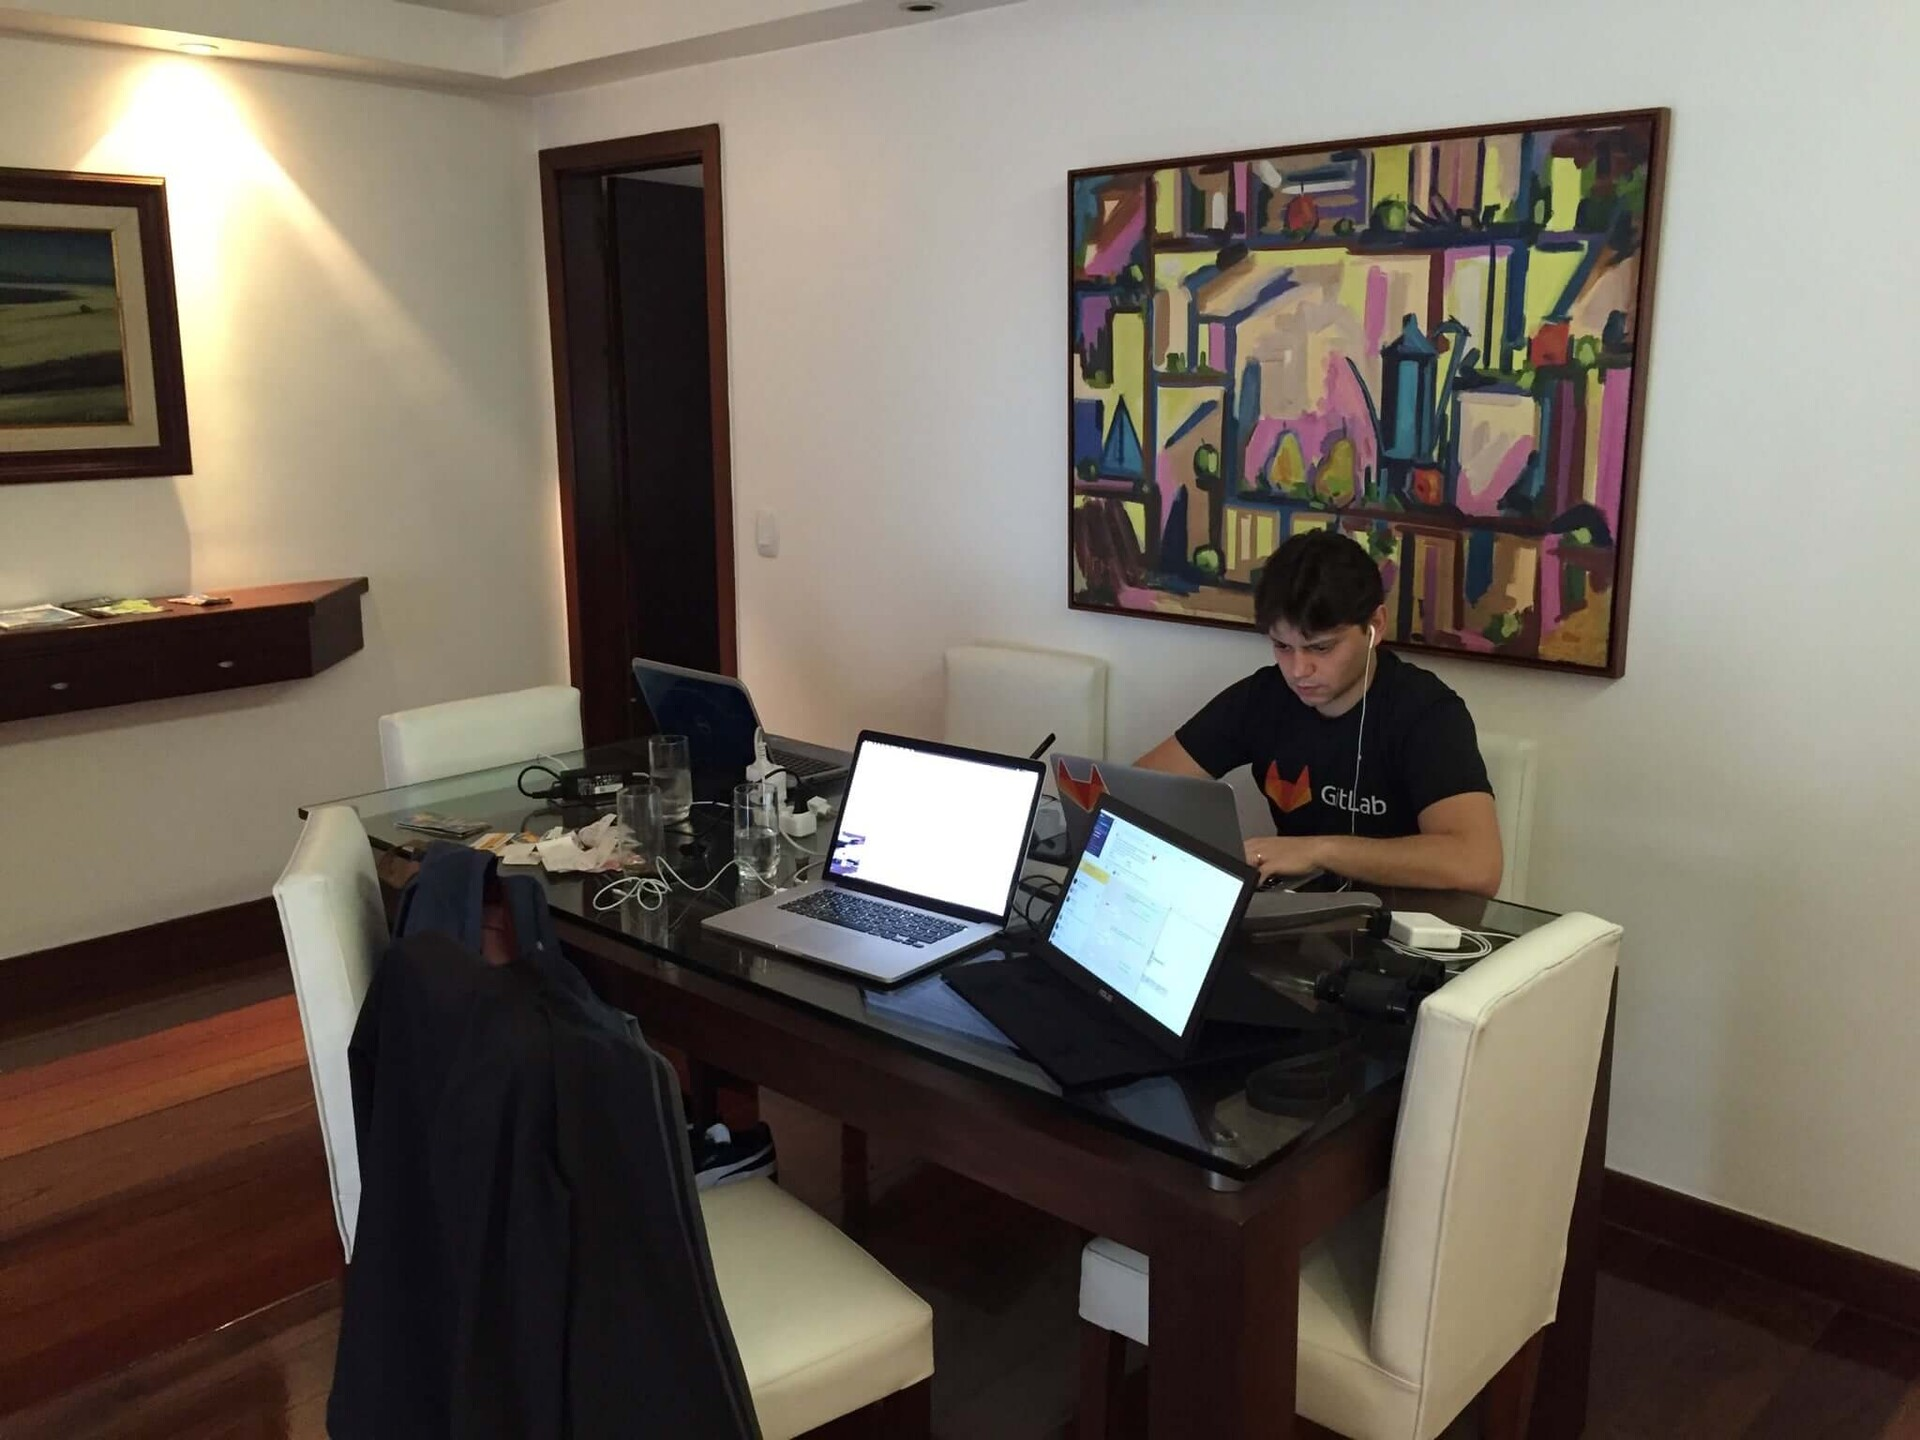 Our temporary office in Rio